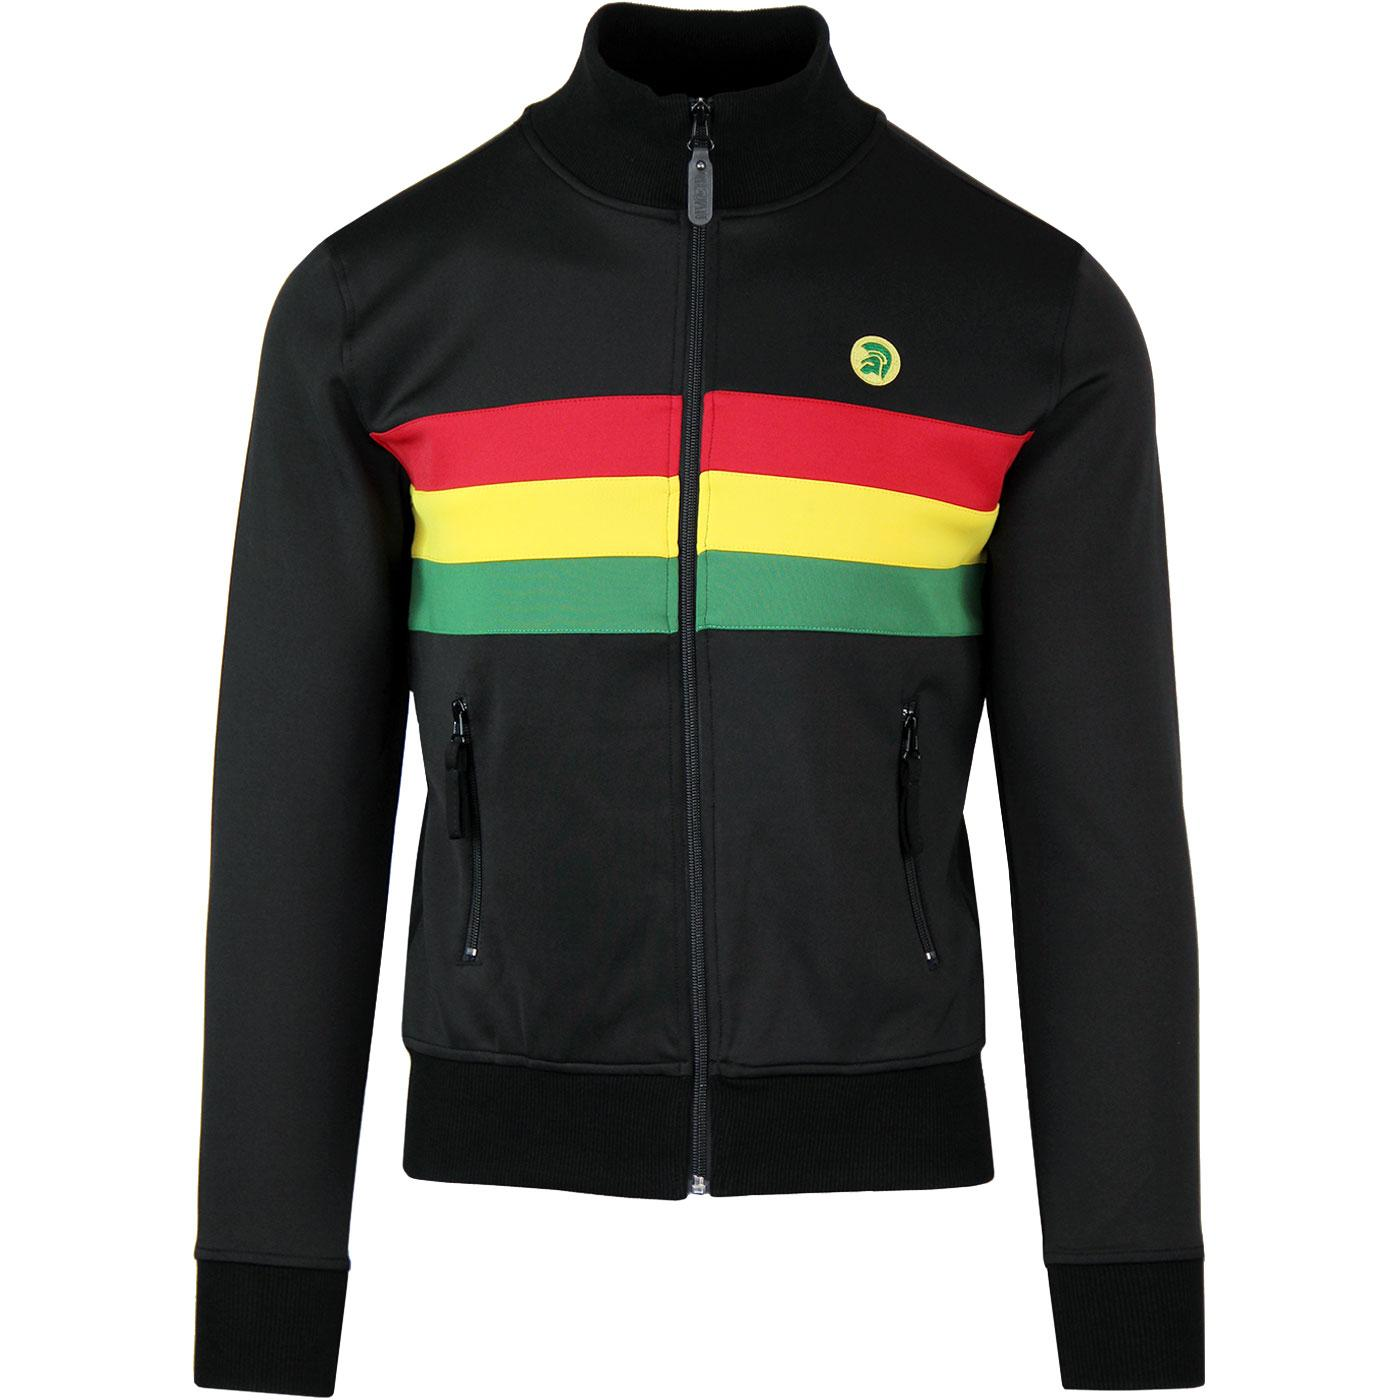 TROJAN RECORDS Rasta Panel 70s Track Top Black